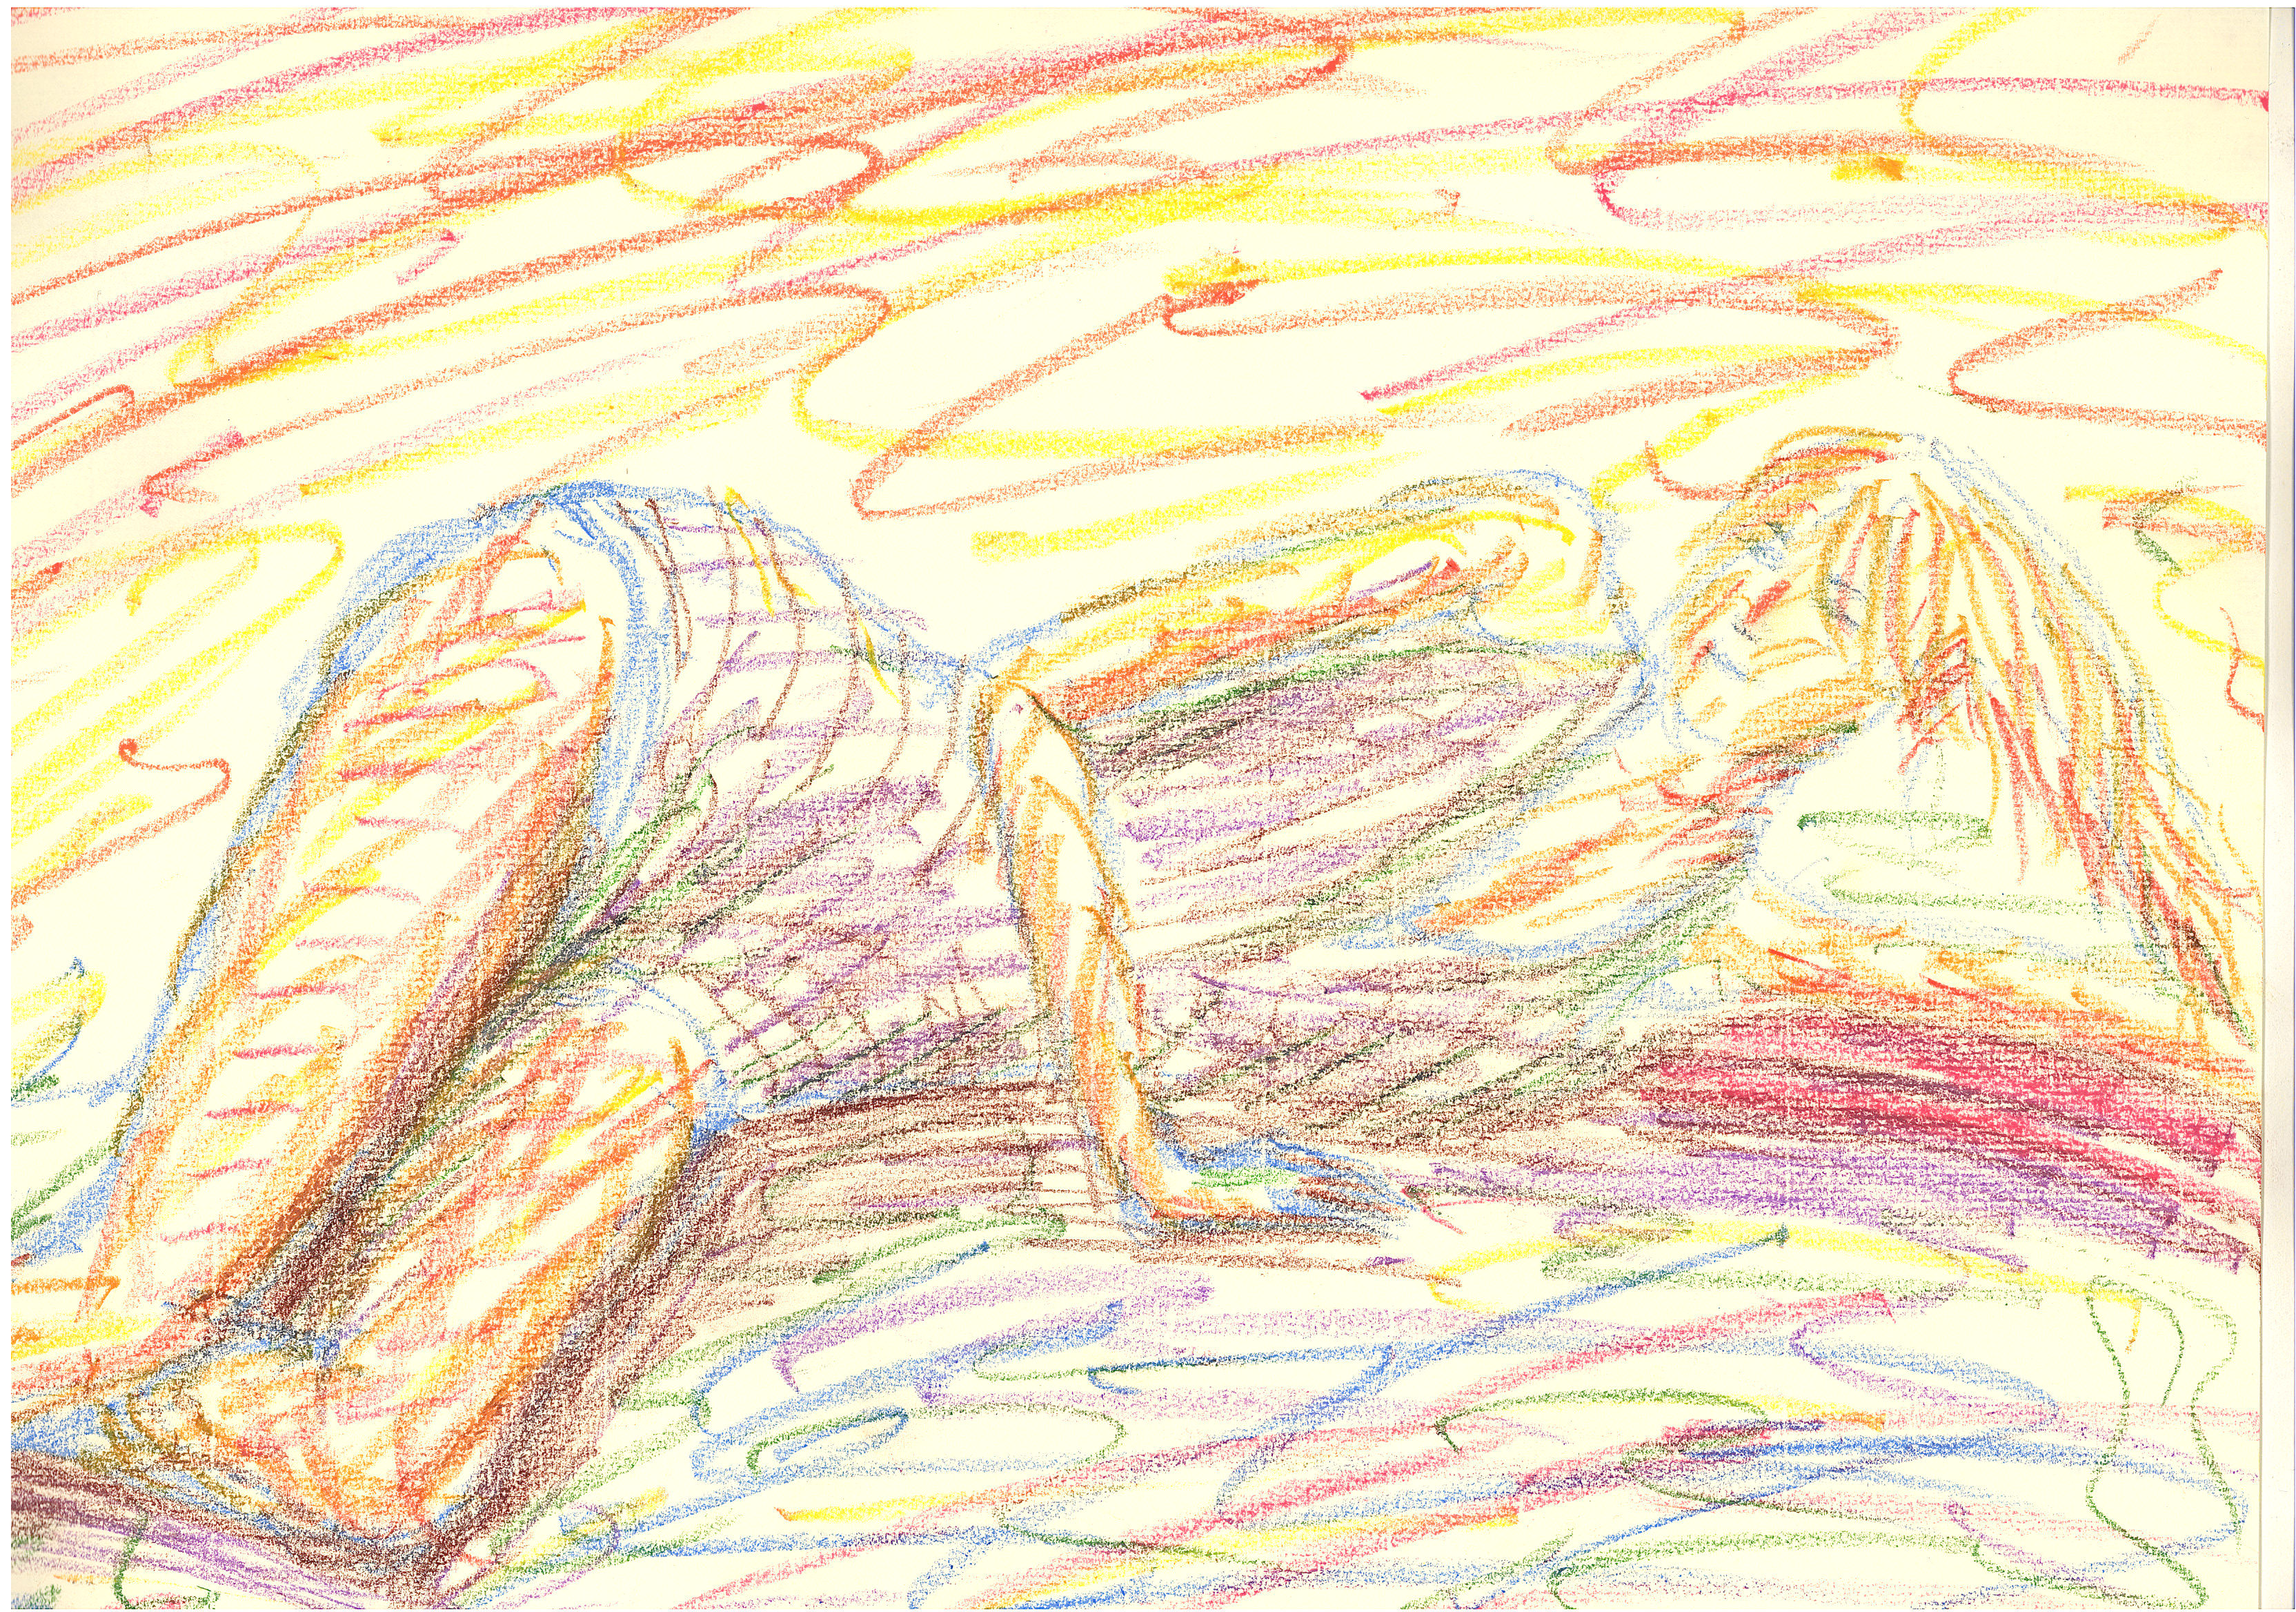 Note: though the model was wearing a swimsuit, those chaotic lines don't let this croquis look like a beach ad!